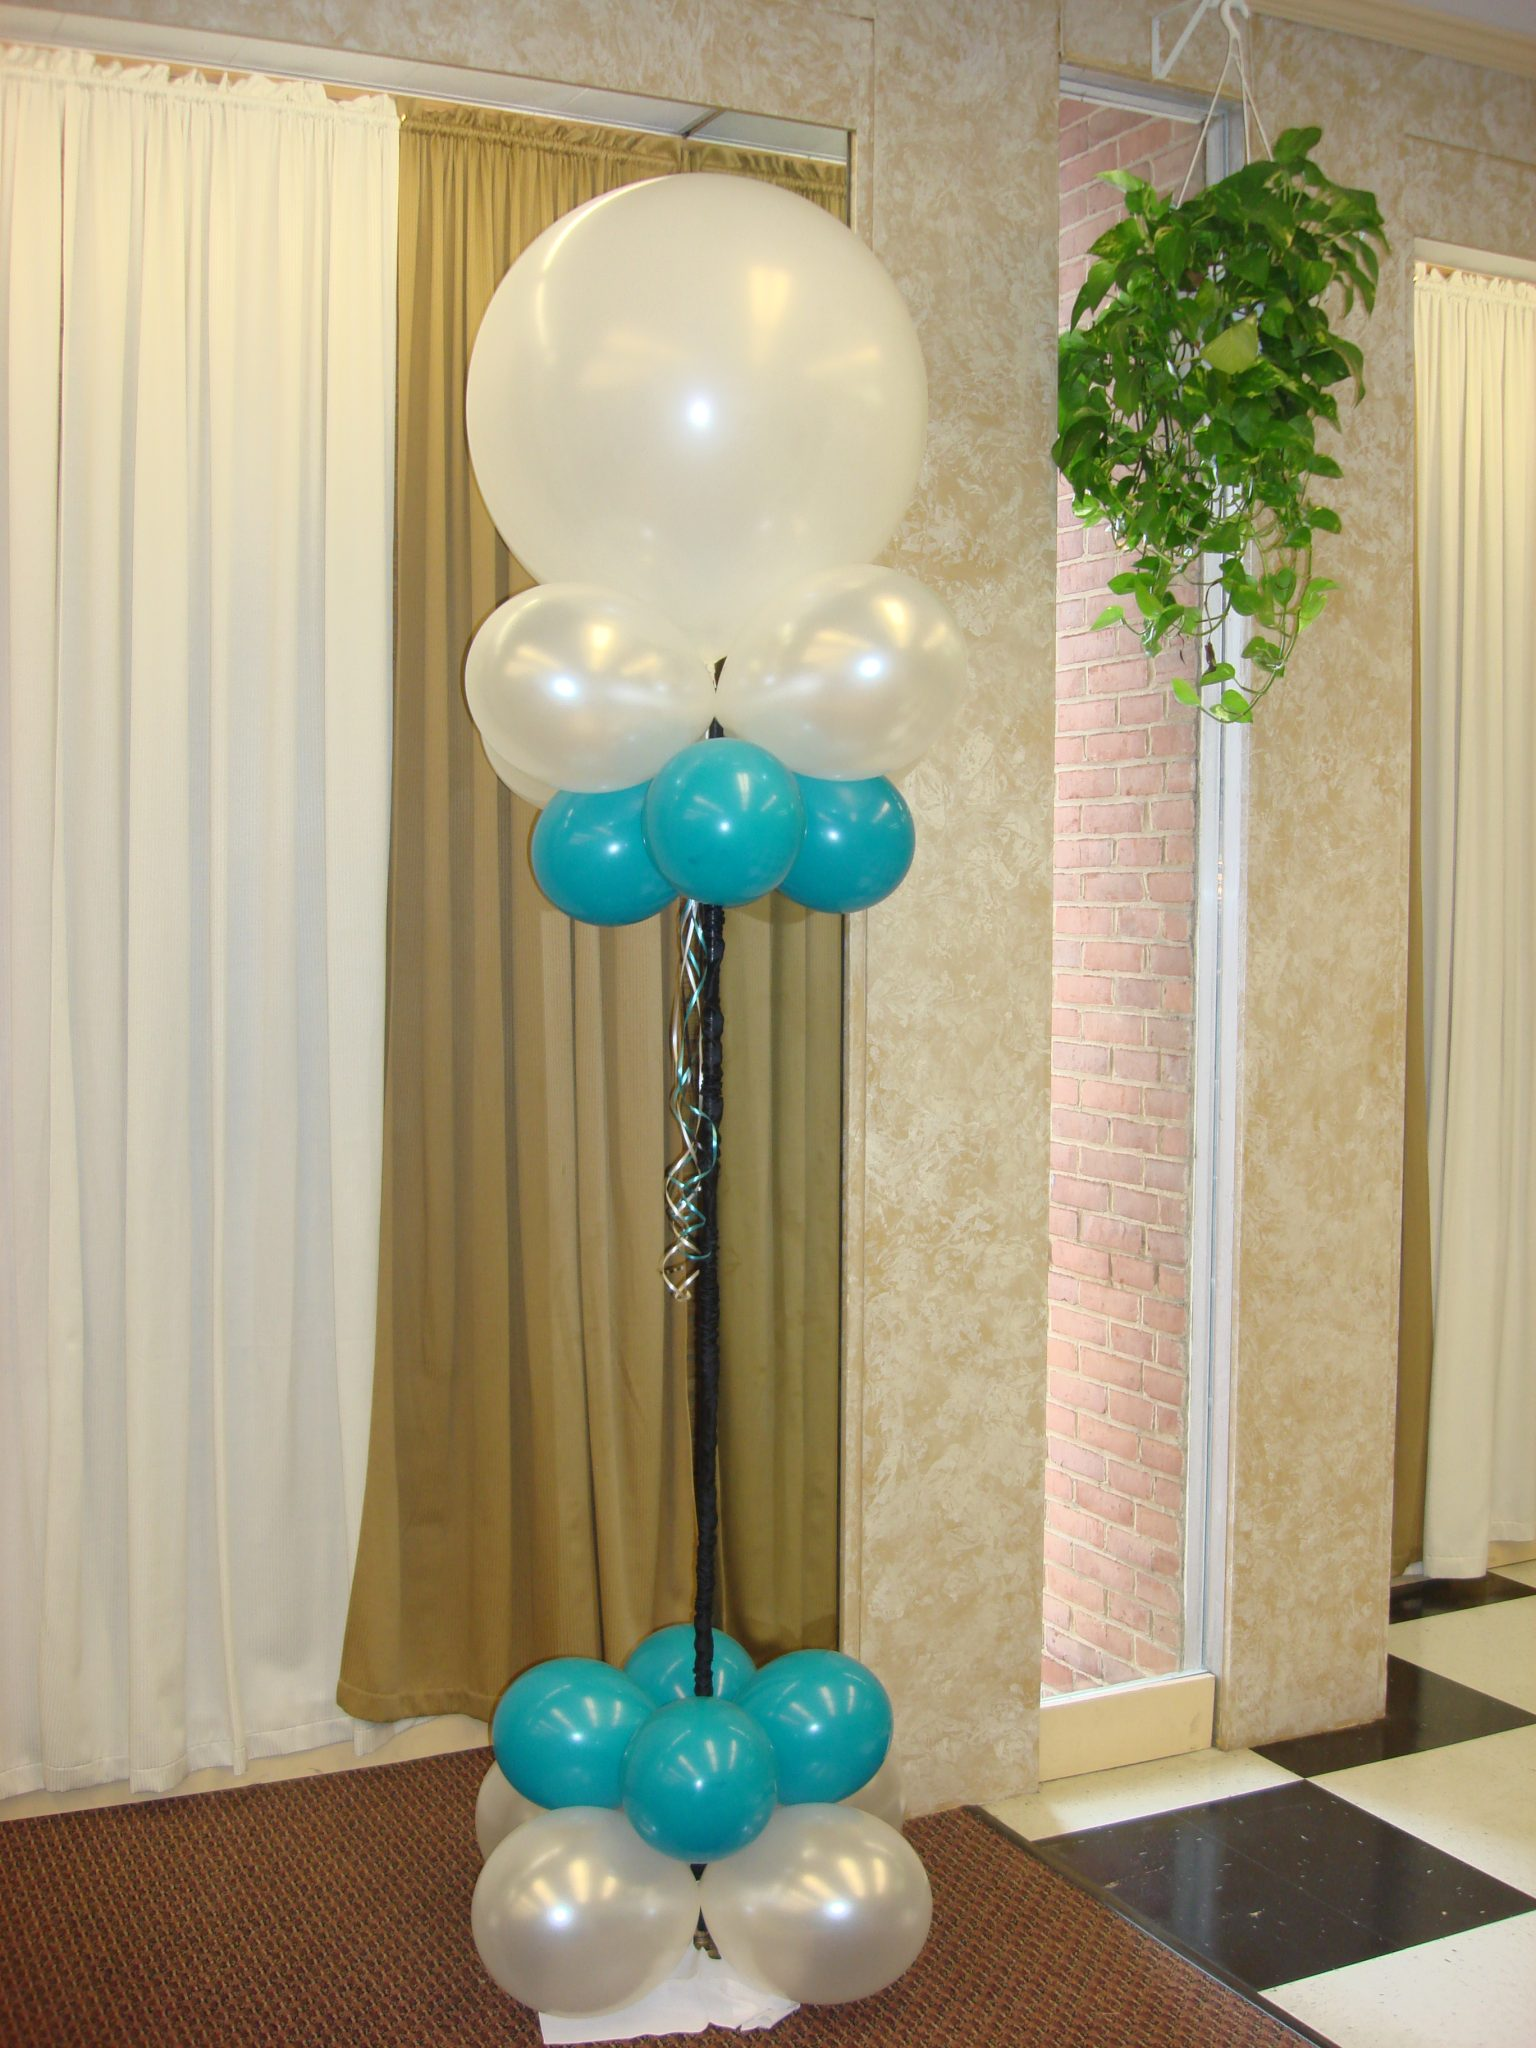 Balloon d cor pricing guide baltimore 39 s best events for Balloon decoration guide